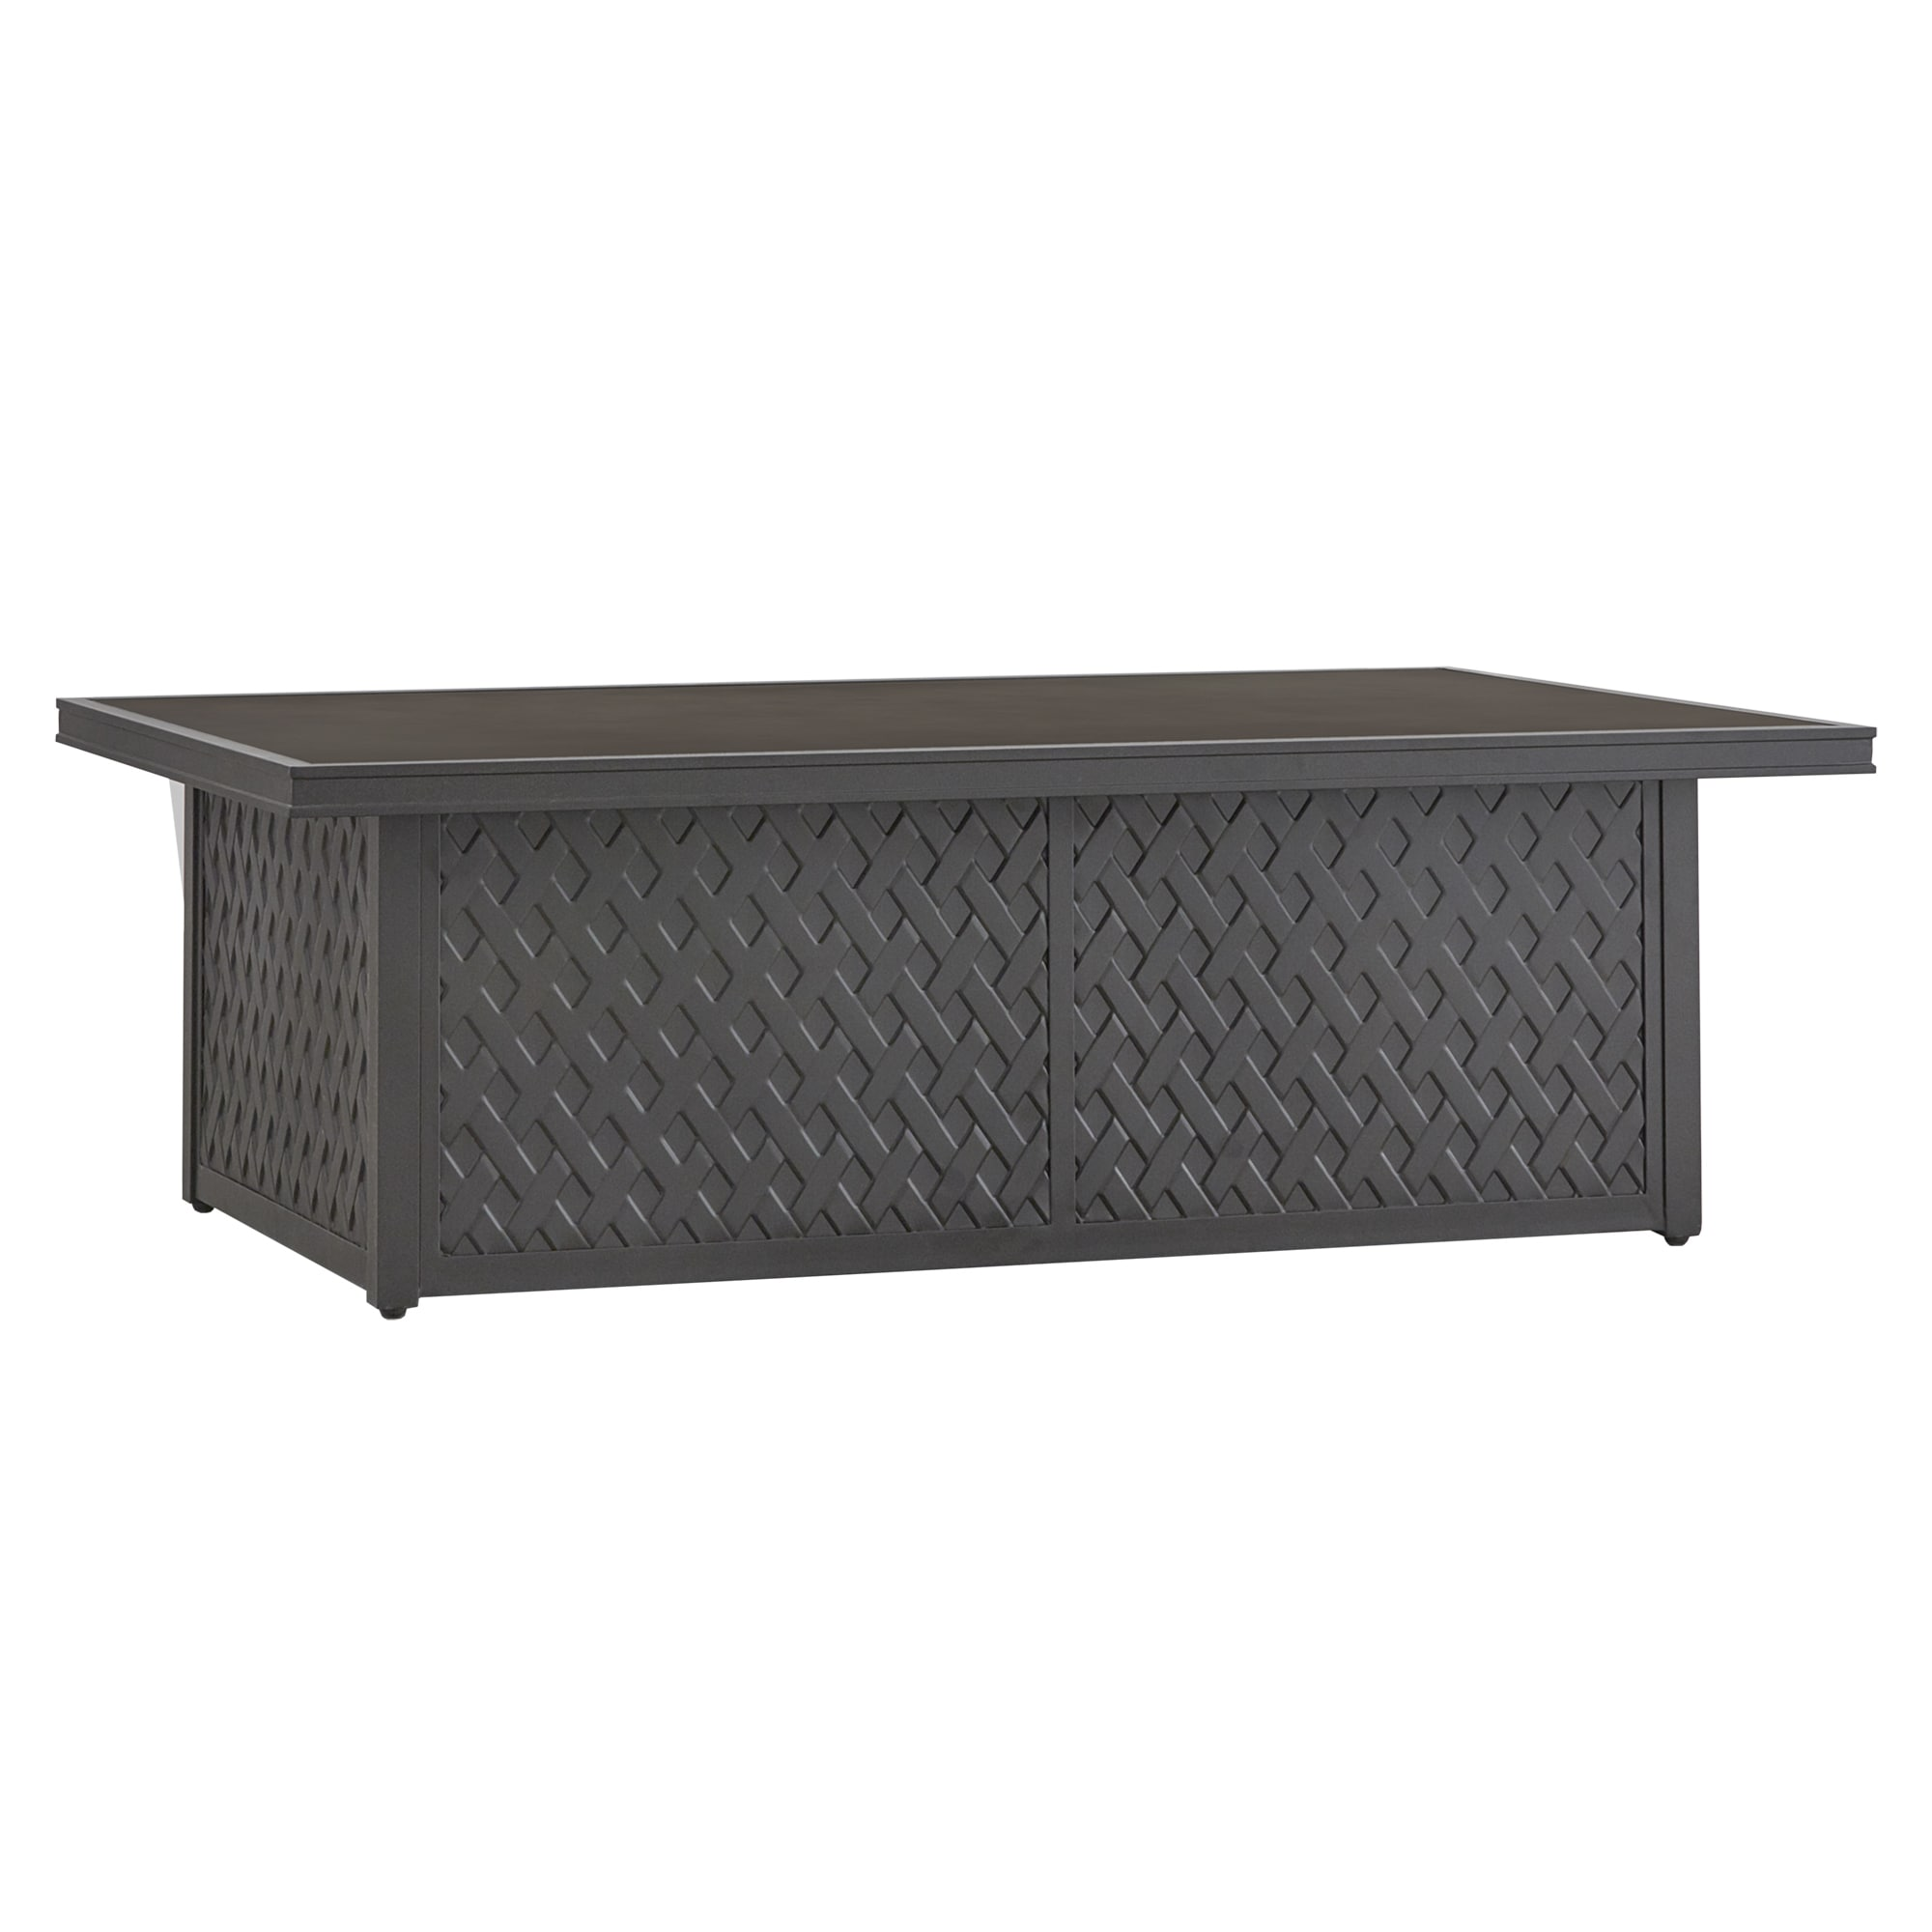 Matira Metal Outdoor Concrete Coffee Table INSPIRE Q Oasis   Free Shipping  Today   Overstock.com   19573559